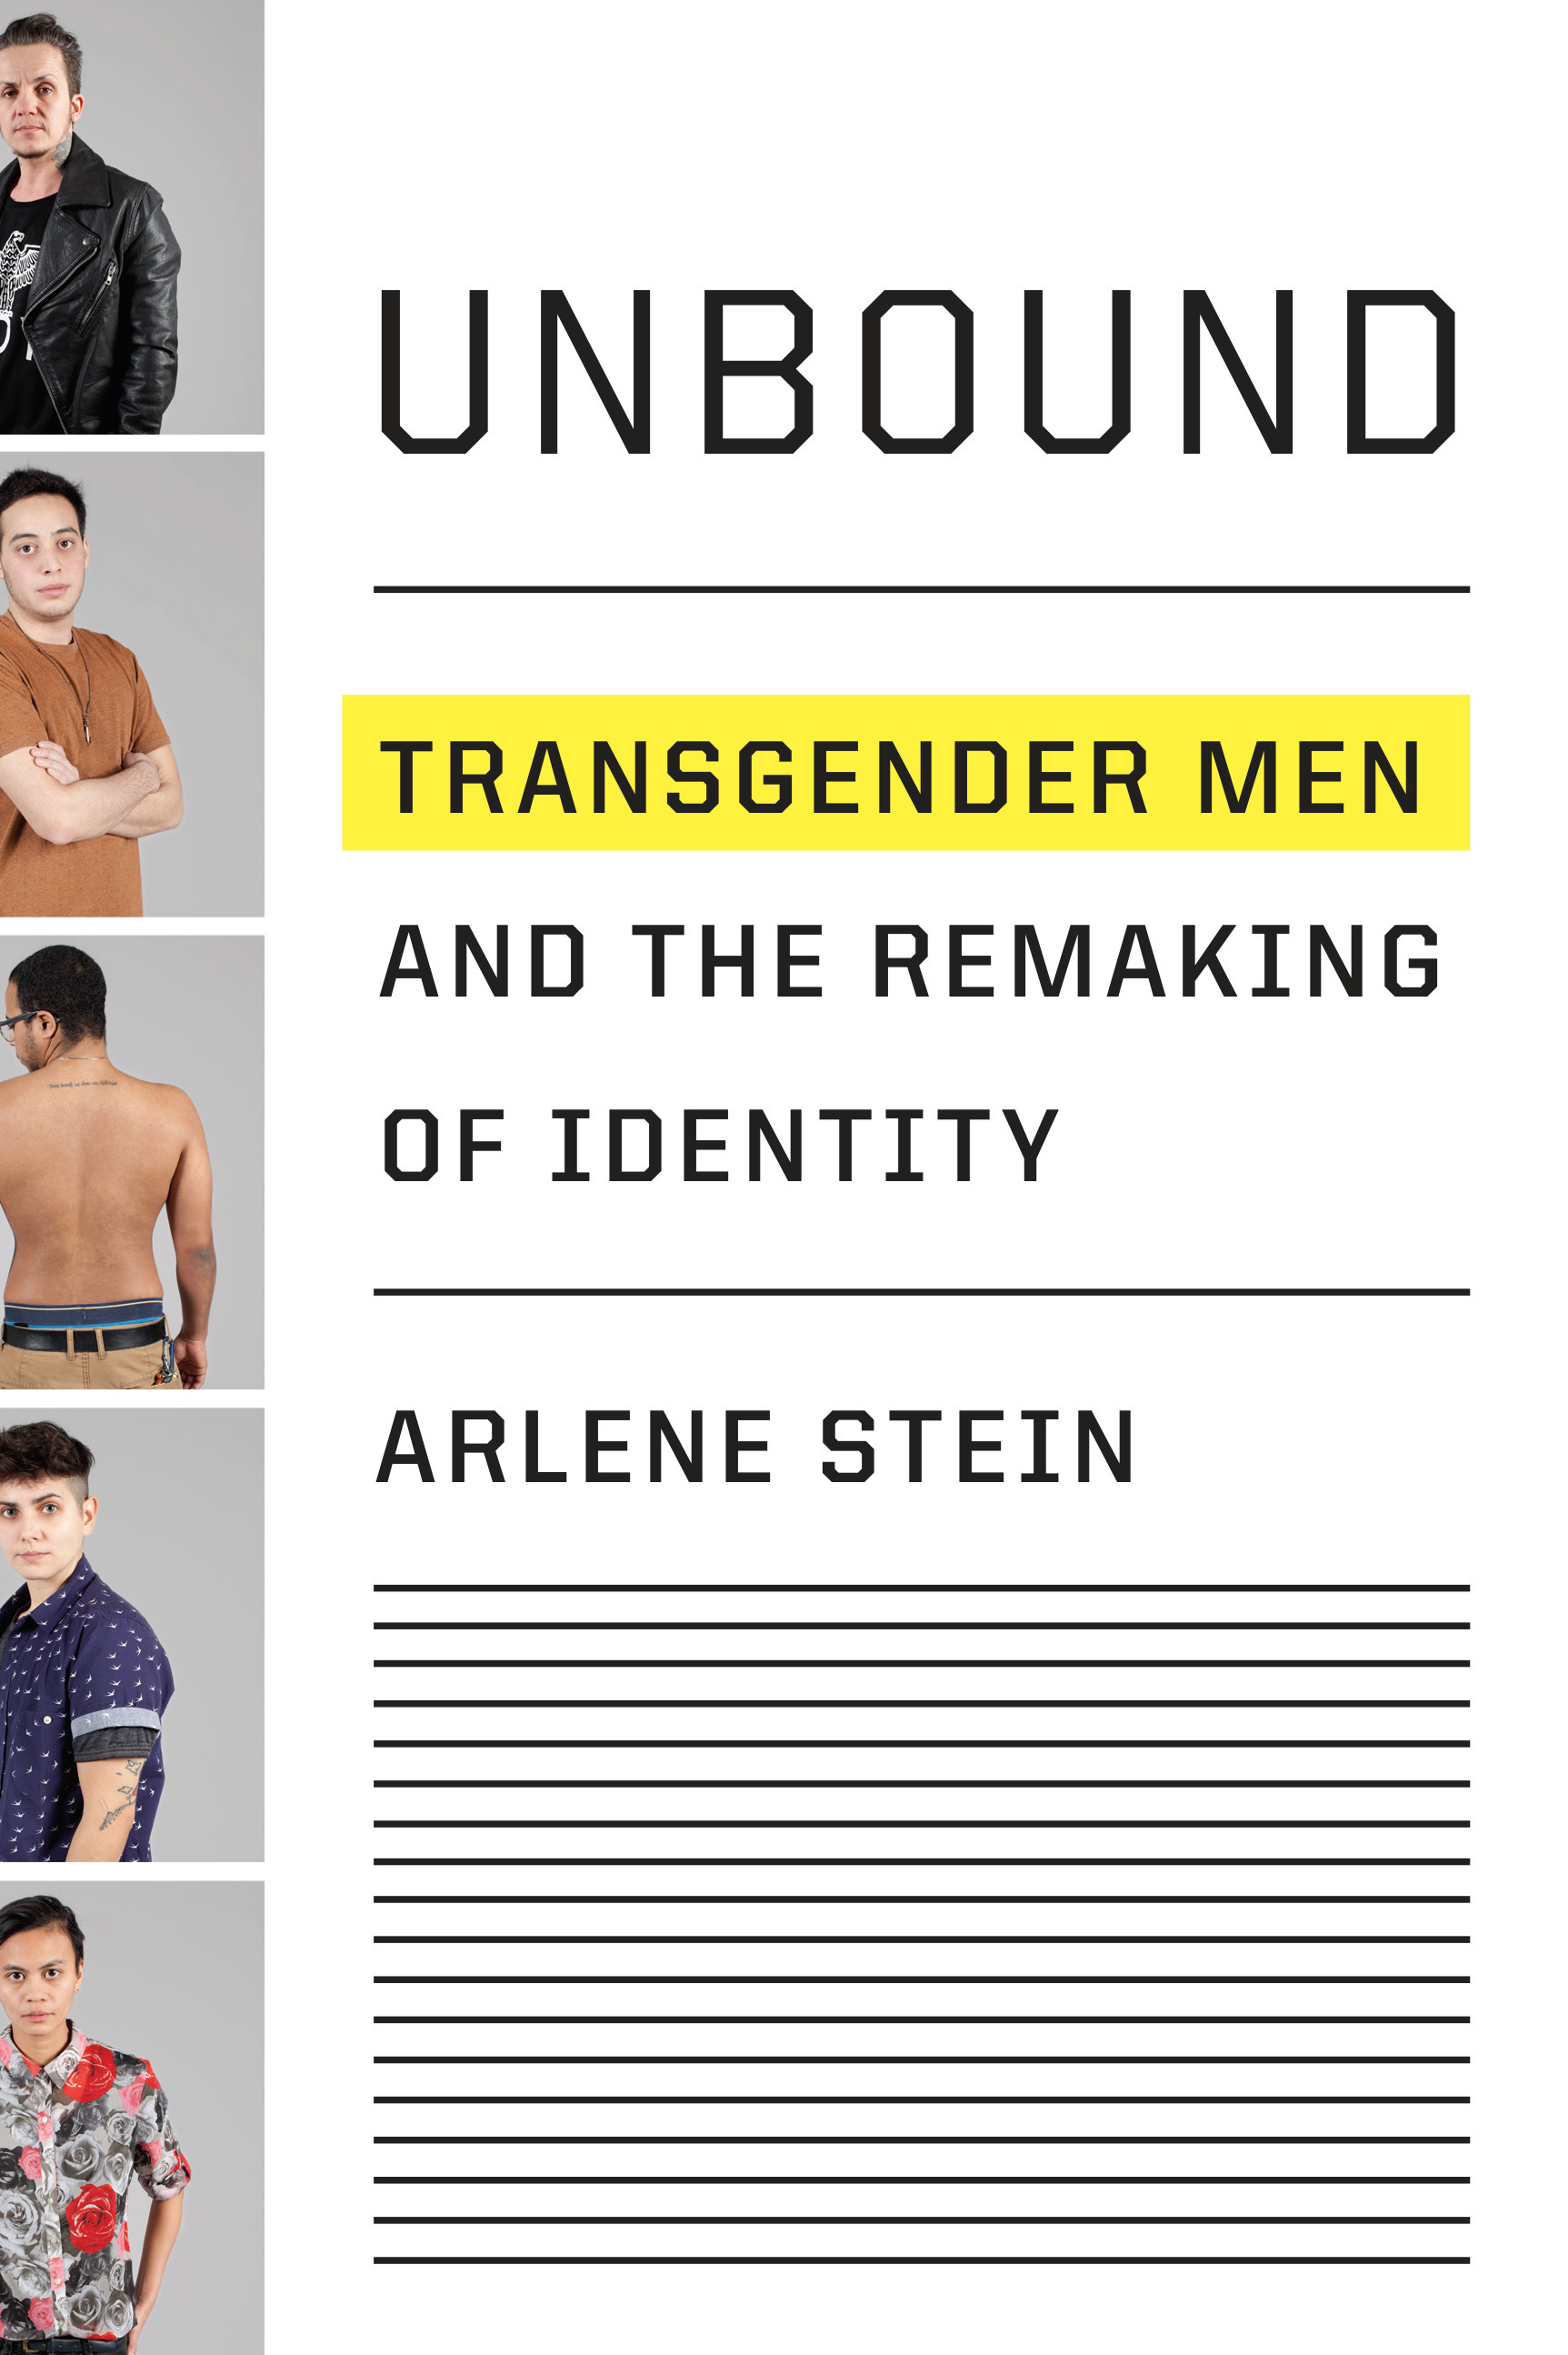 Unbound Transgender Men and the Remaking of Identity